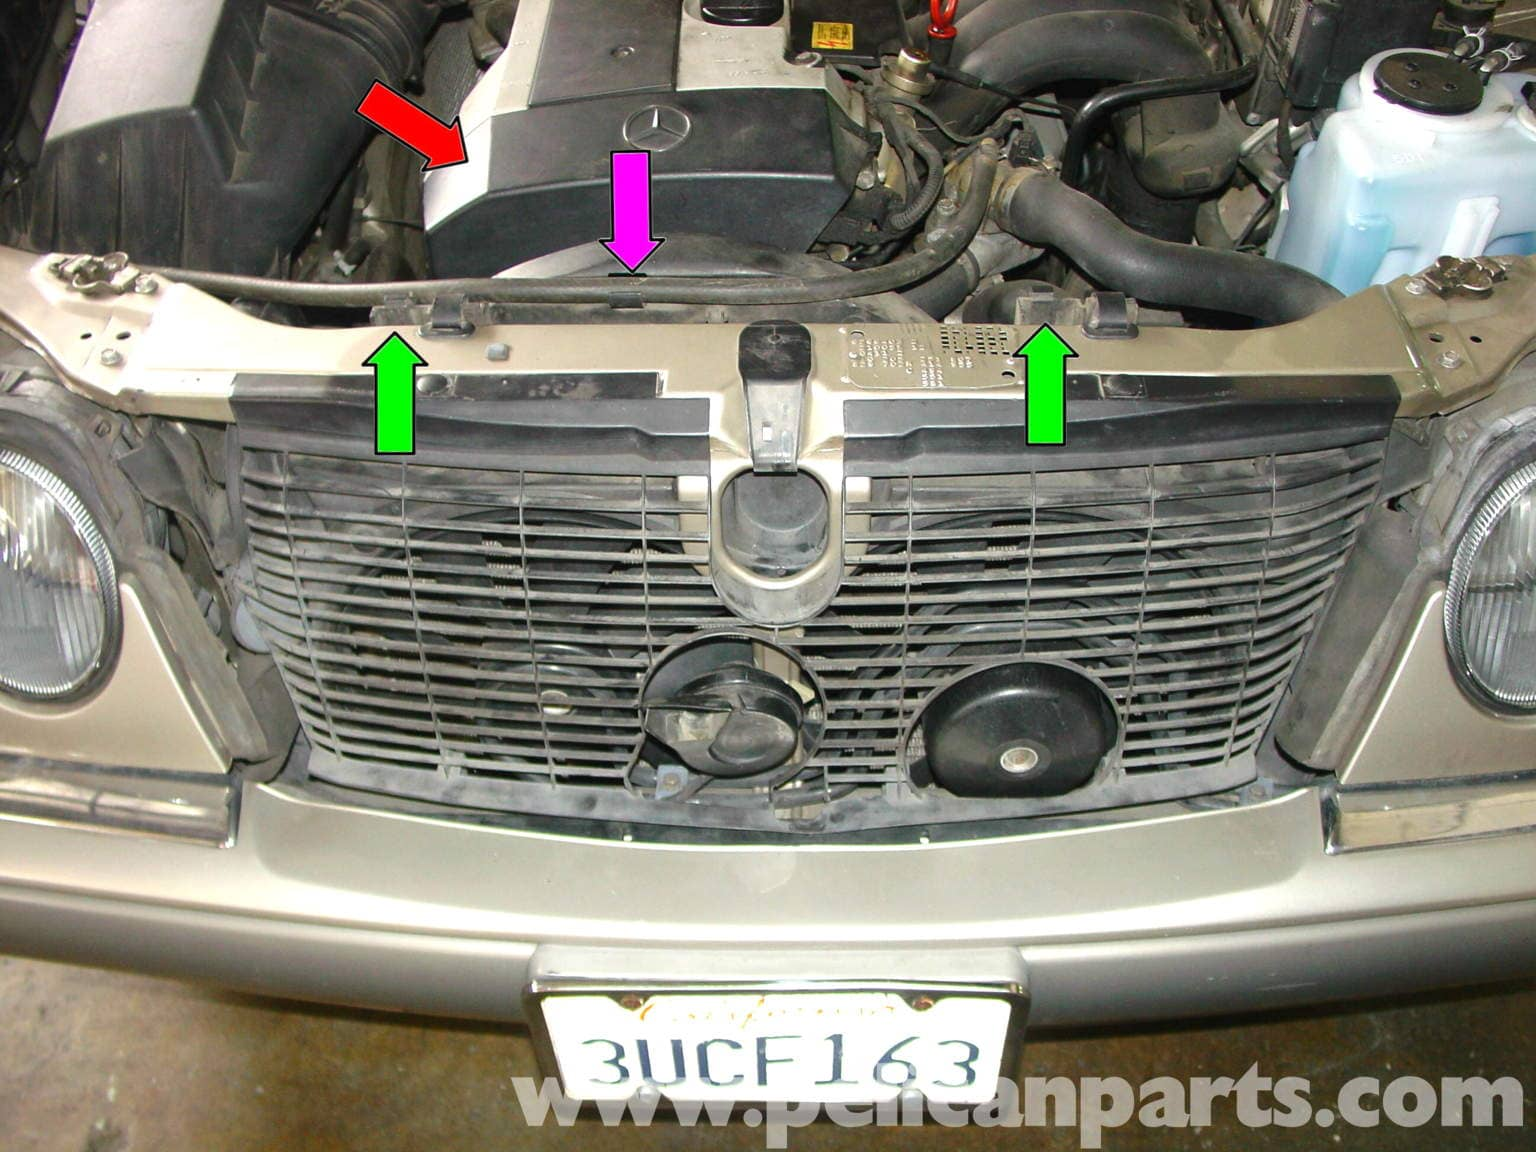 Outside Light Wiring Diagram Uk Mercedes Benz W210 Serpentine Belt Replacement 1996 03